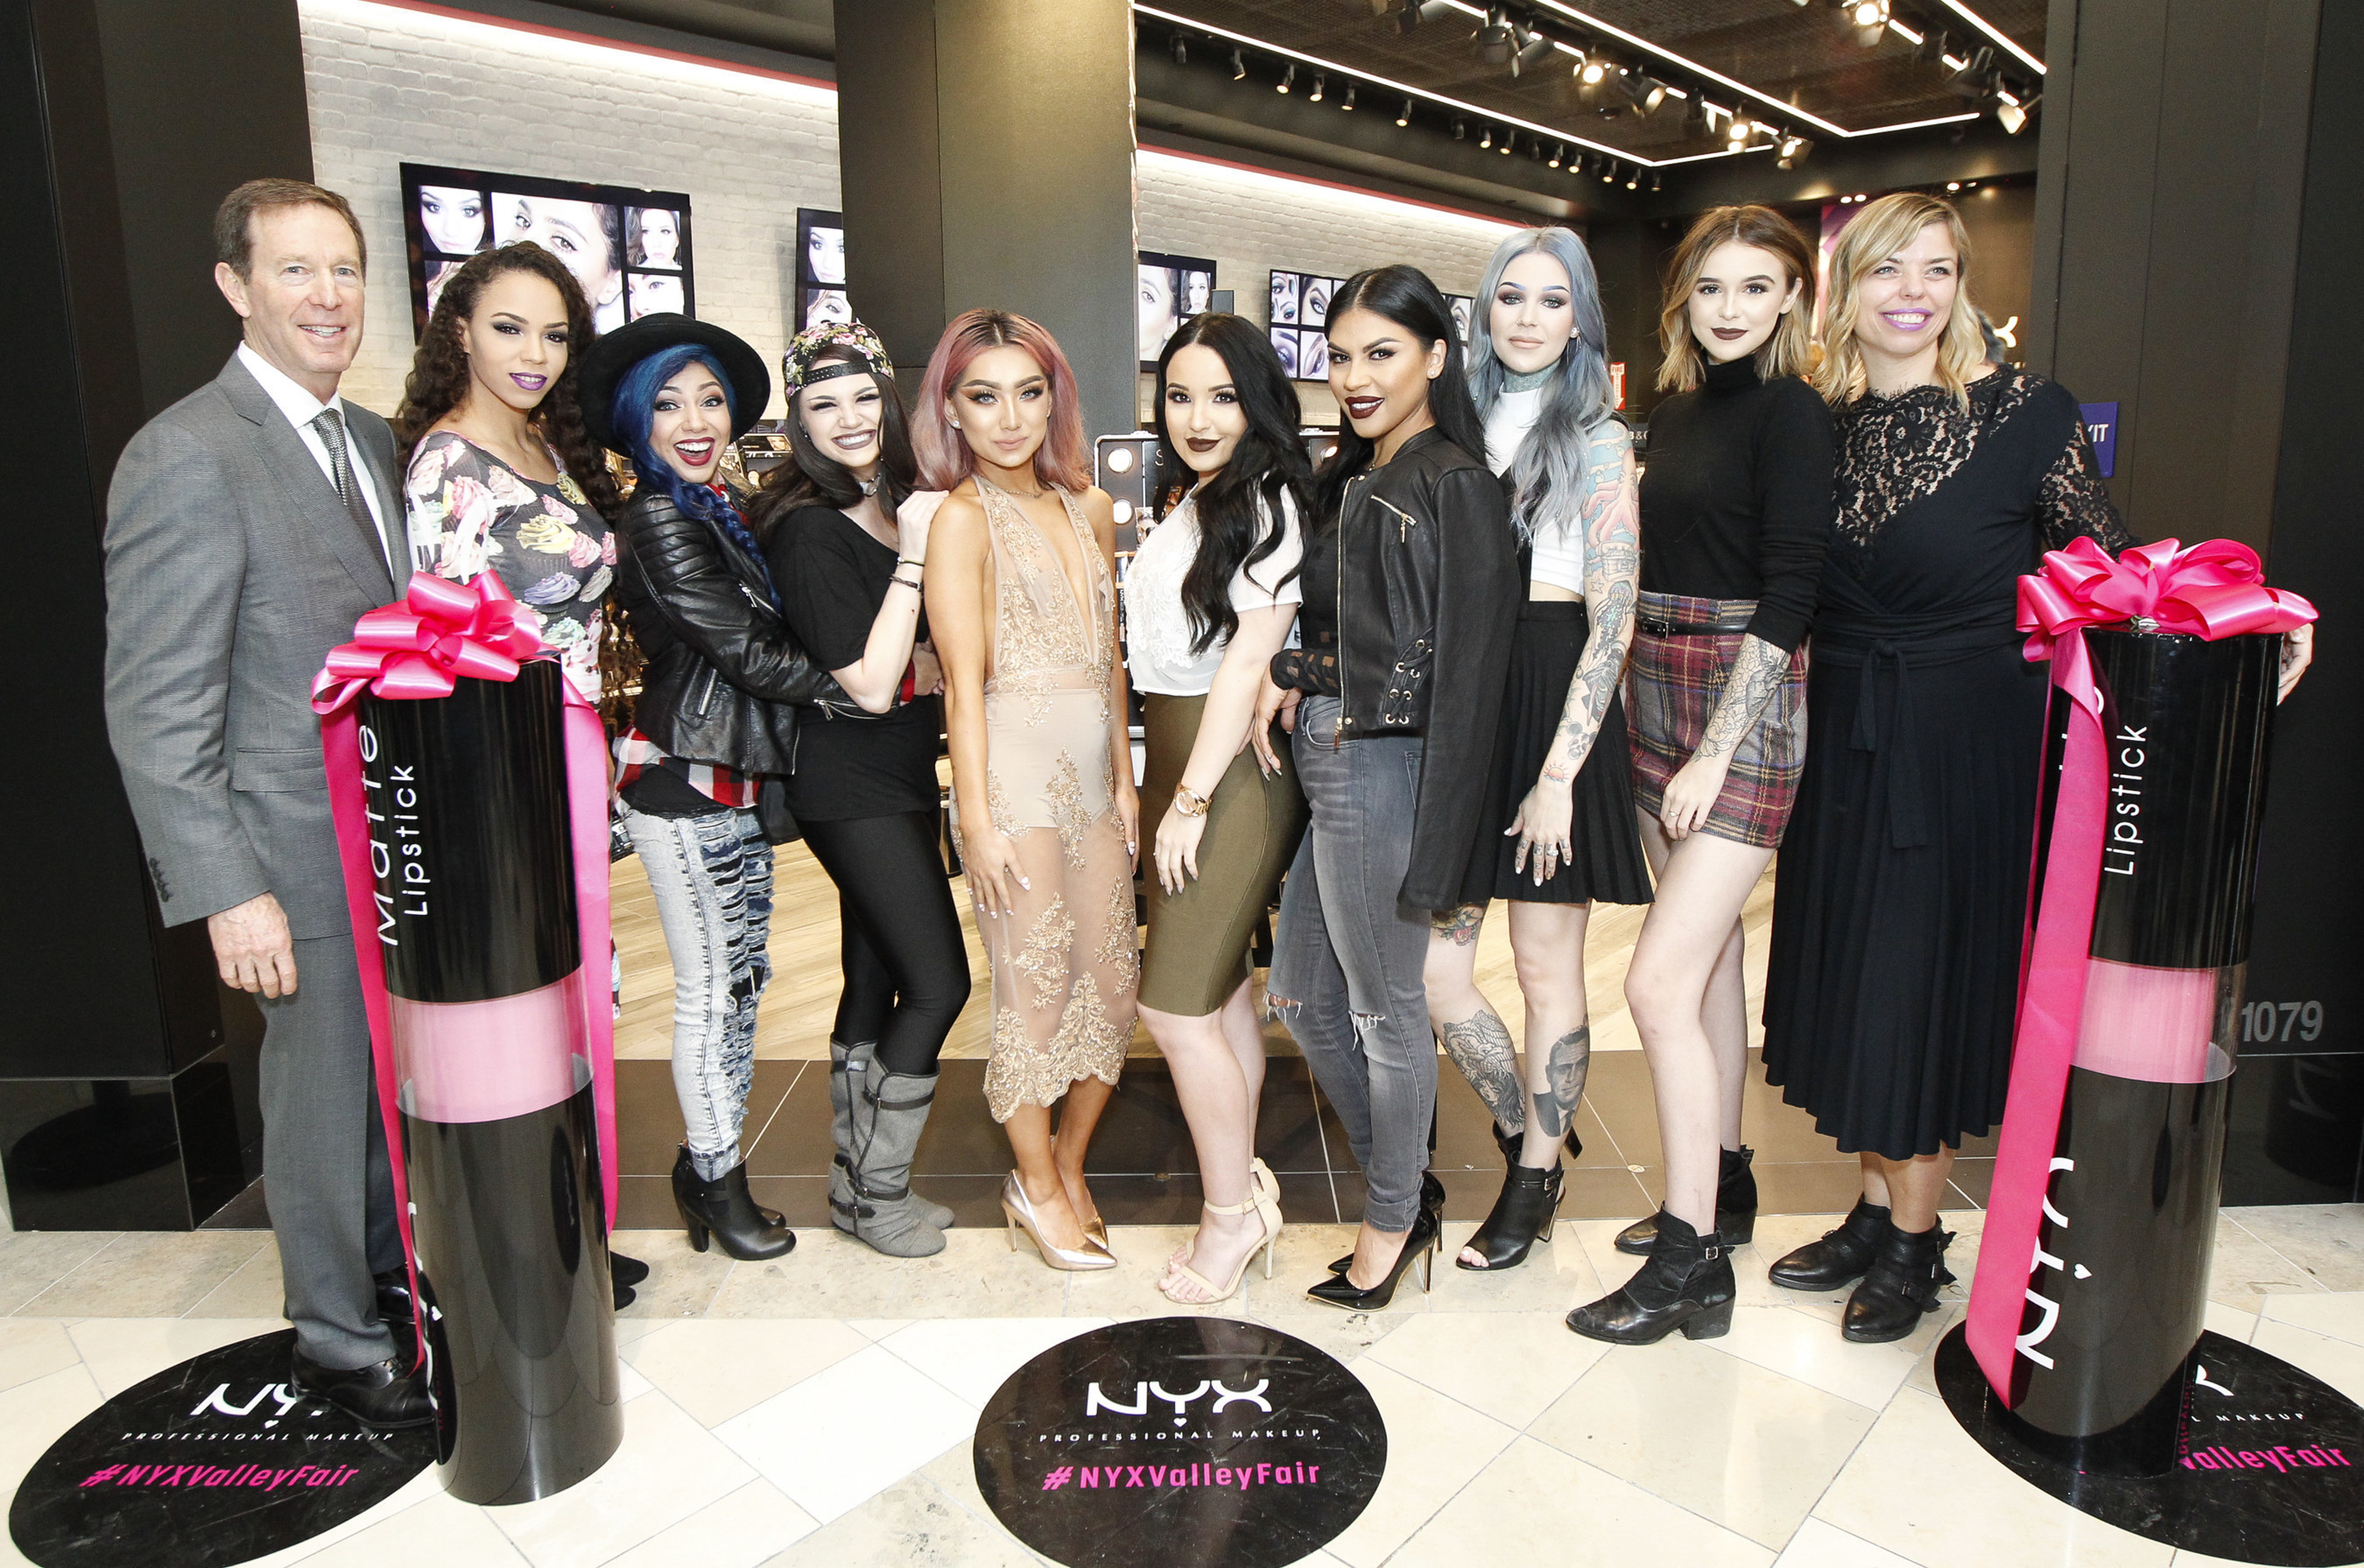 NYX Professional Makeup opens first retail store in Northern California at Westfield Valley Fair shopping center on Friday, Jan. 22, 2016.